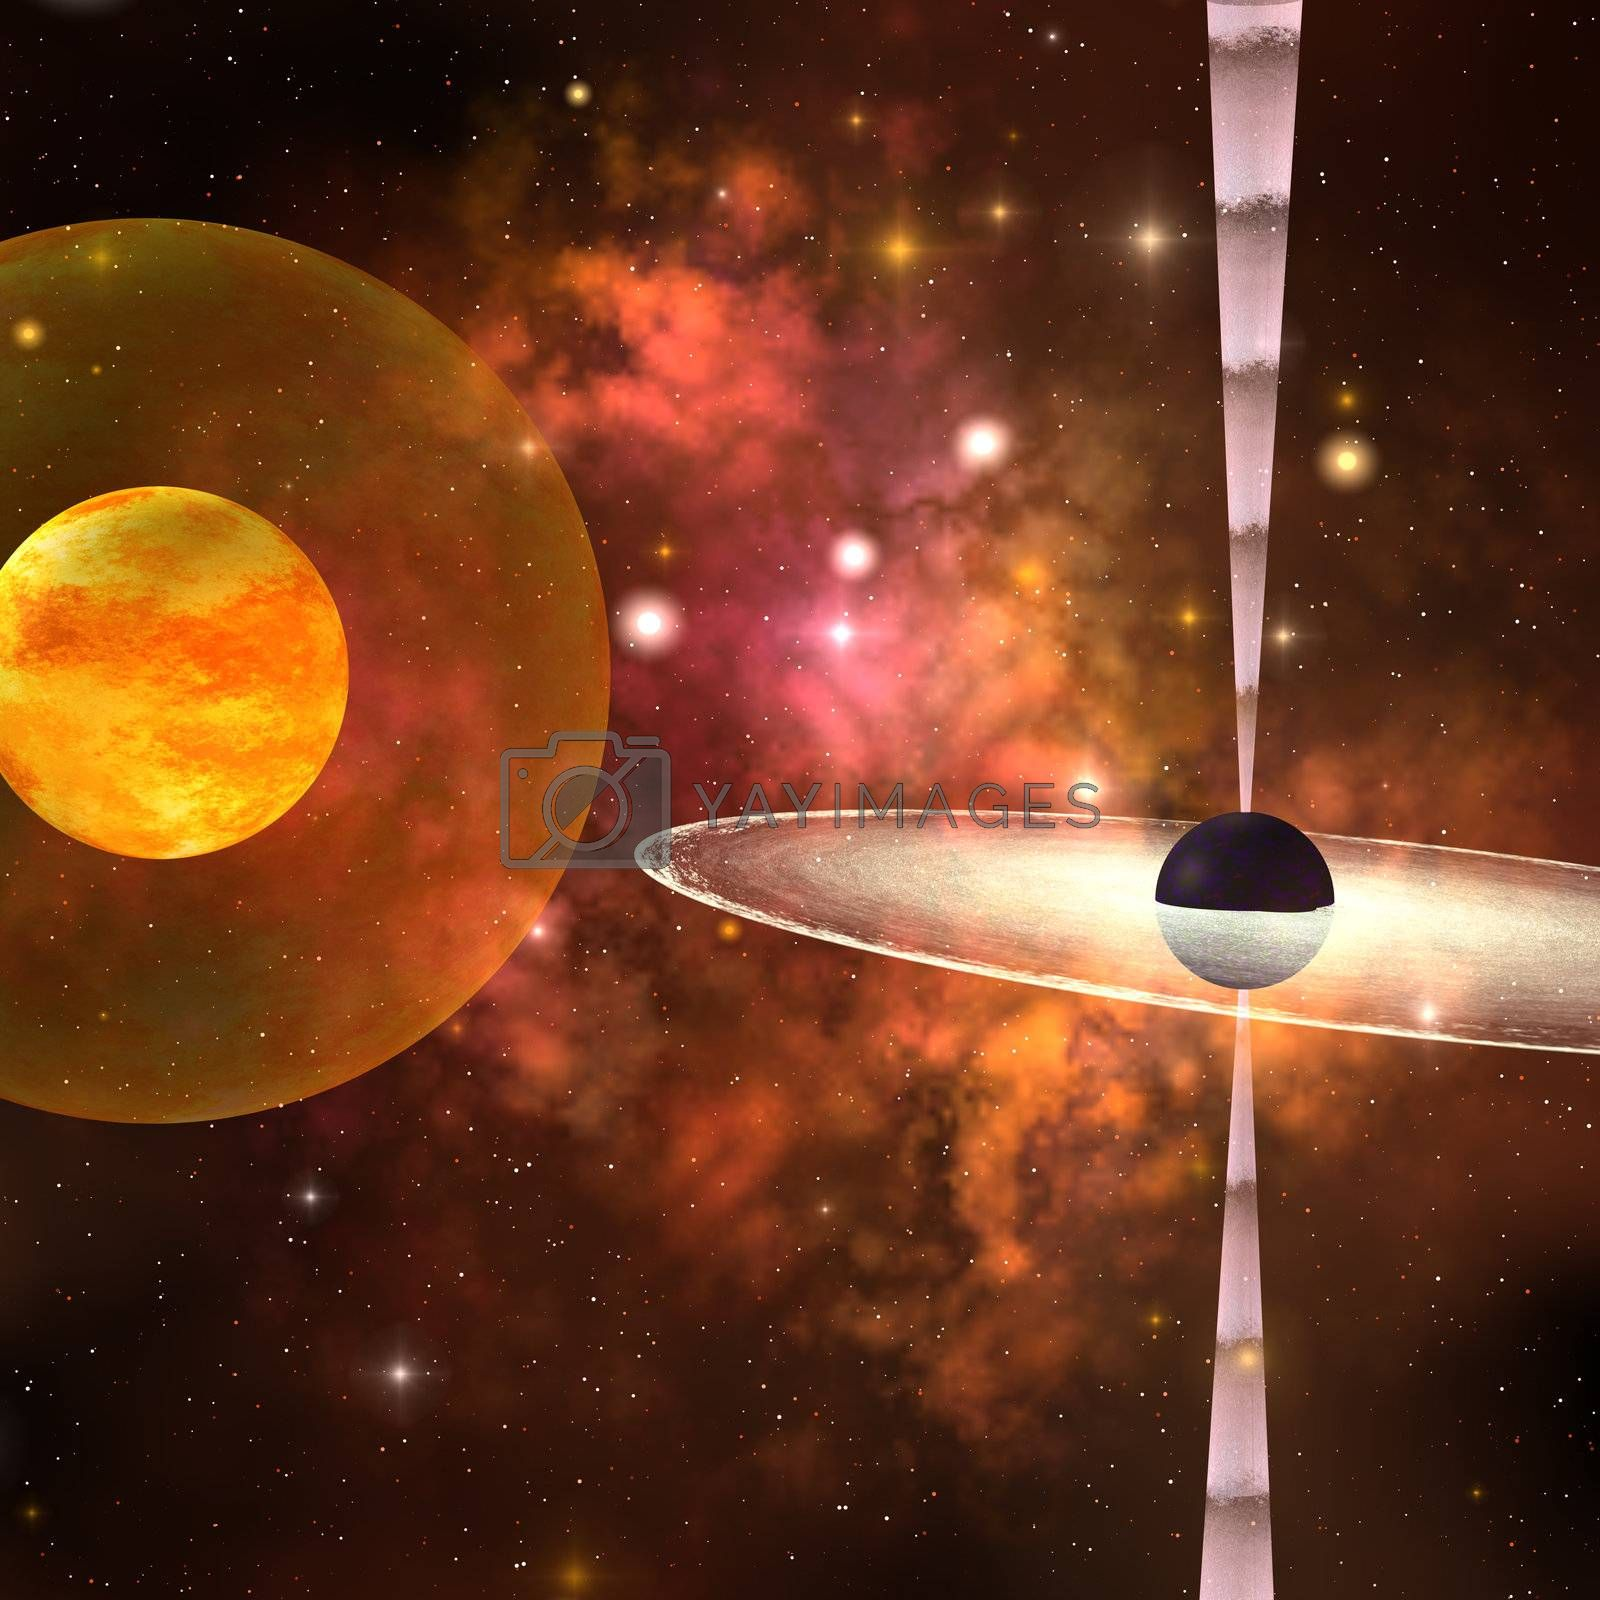 A huge sun encircled by an energy field orbits near a black hole in space.